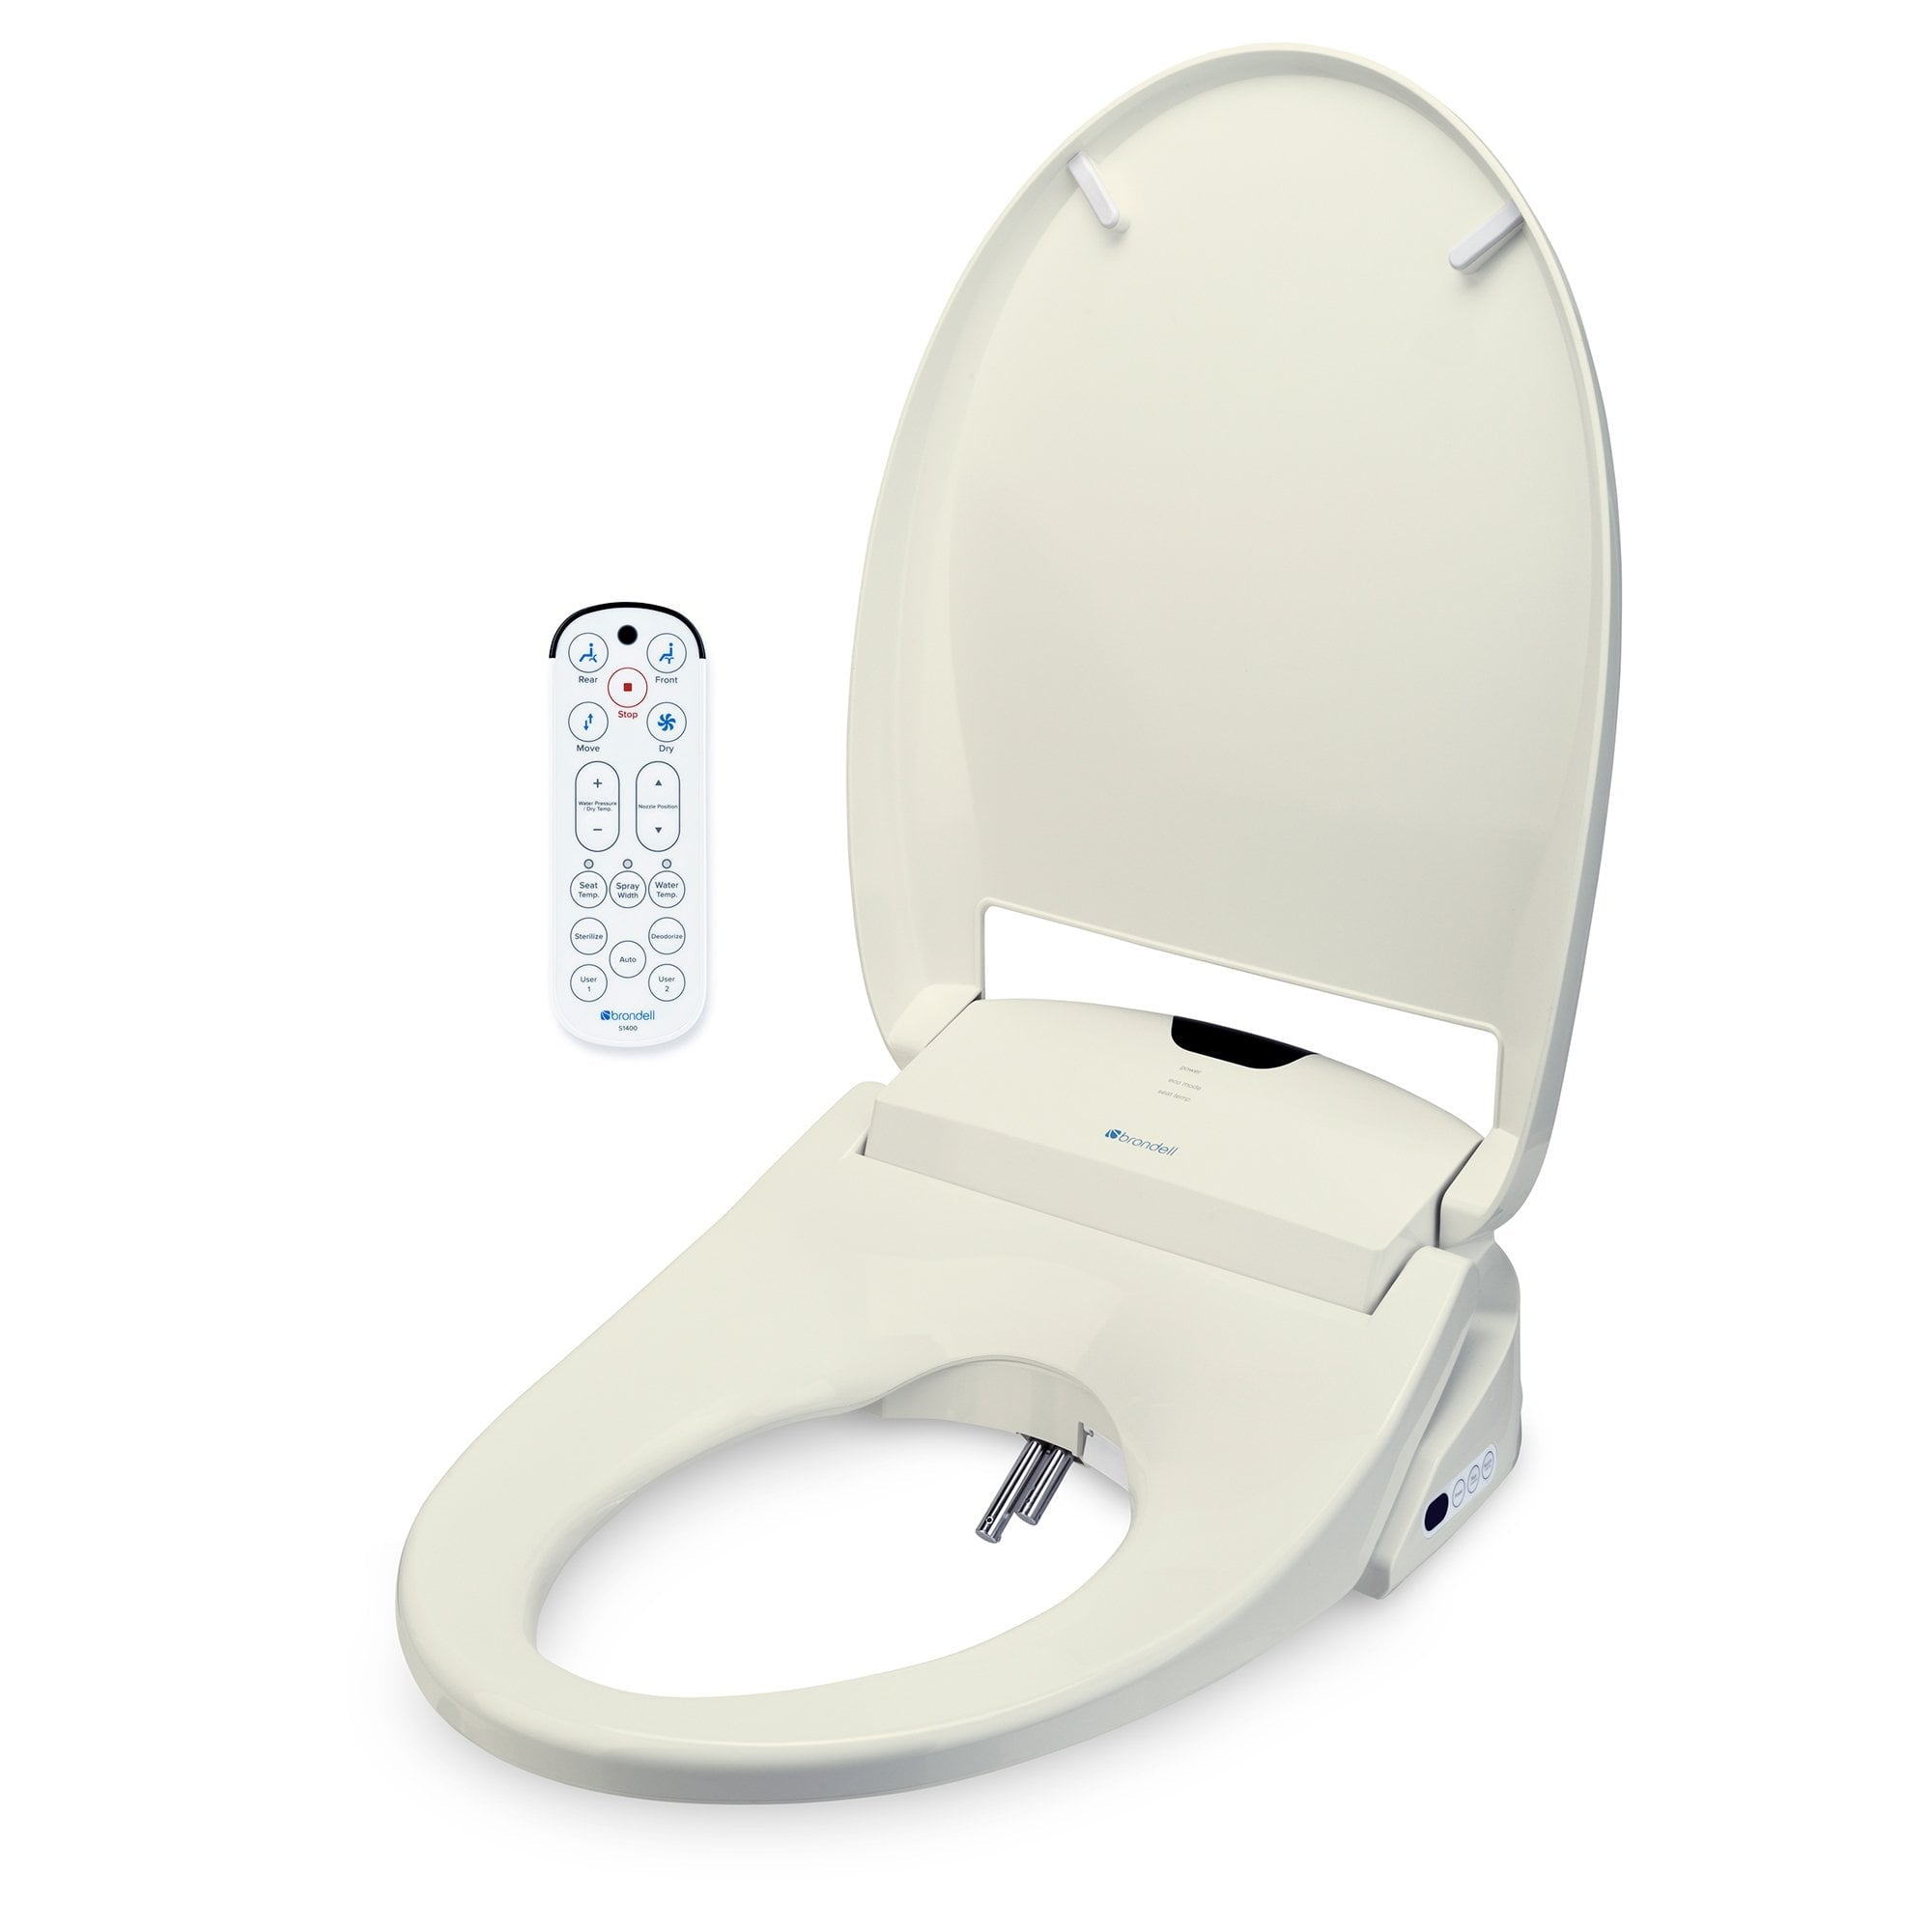 Outstanding Brondell Swash 1400 Luxury Bidet Toilet Seat Ibusinesslaw Wood Chair Design Ideas Ibusinesslaworg